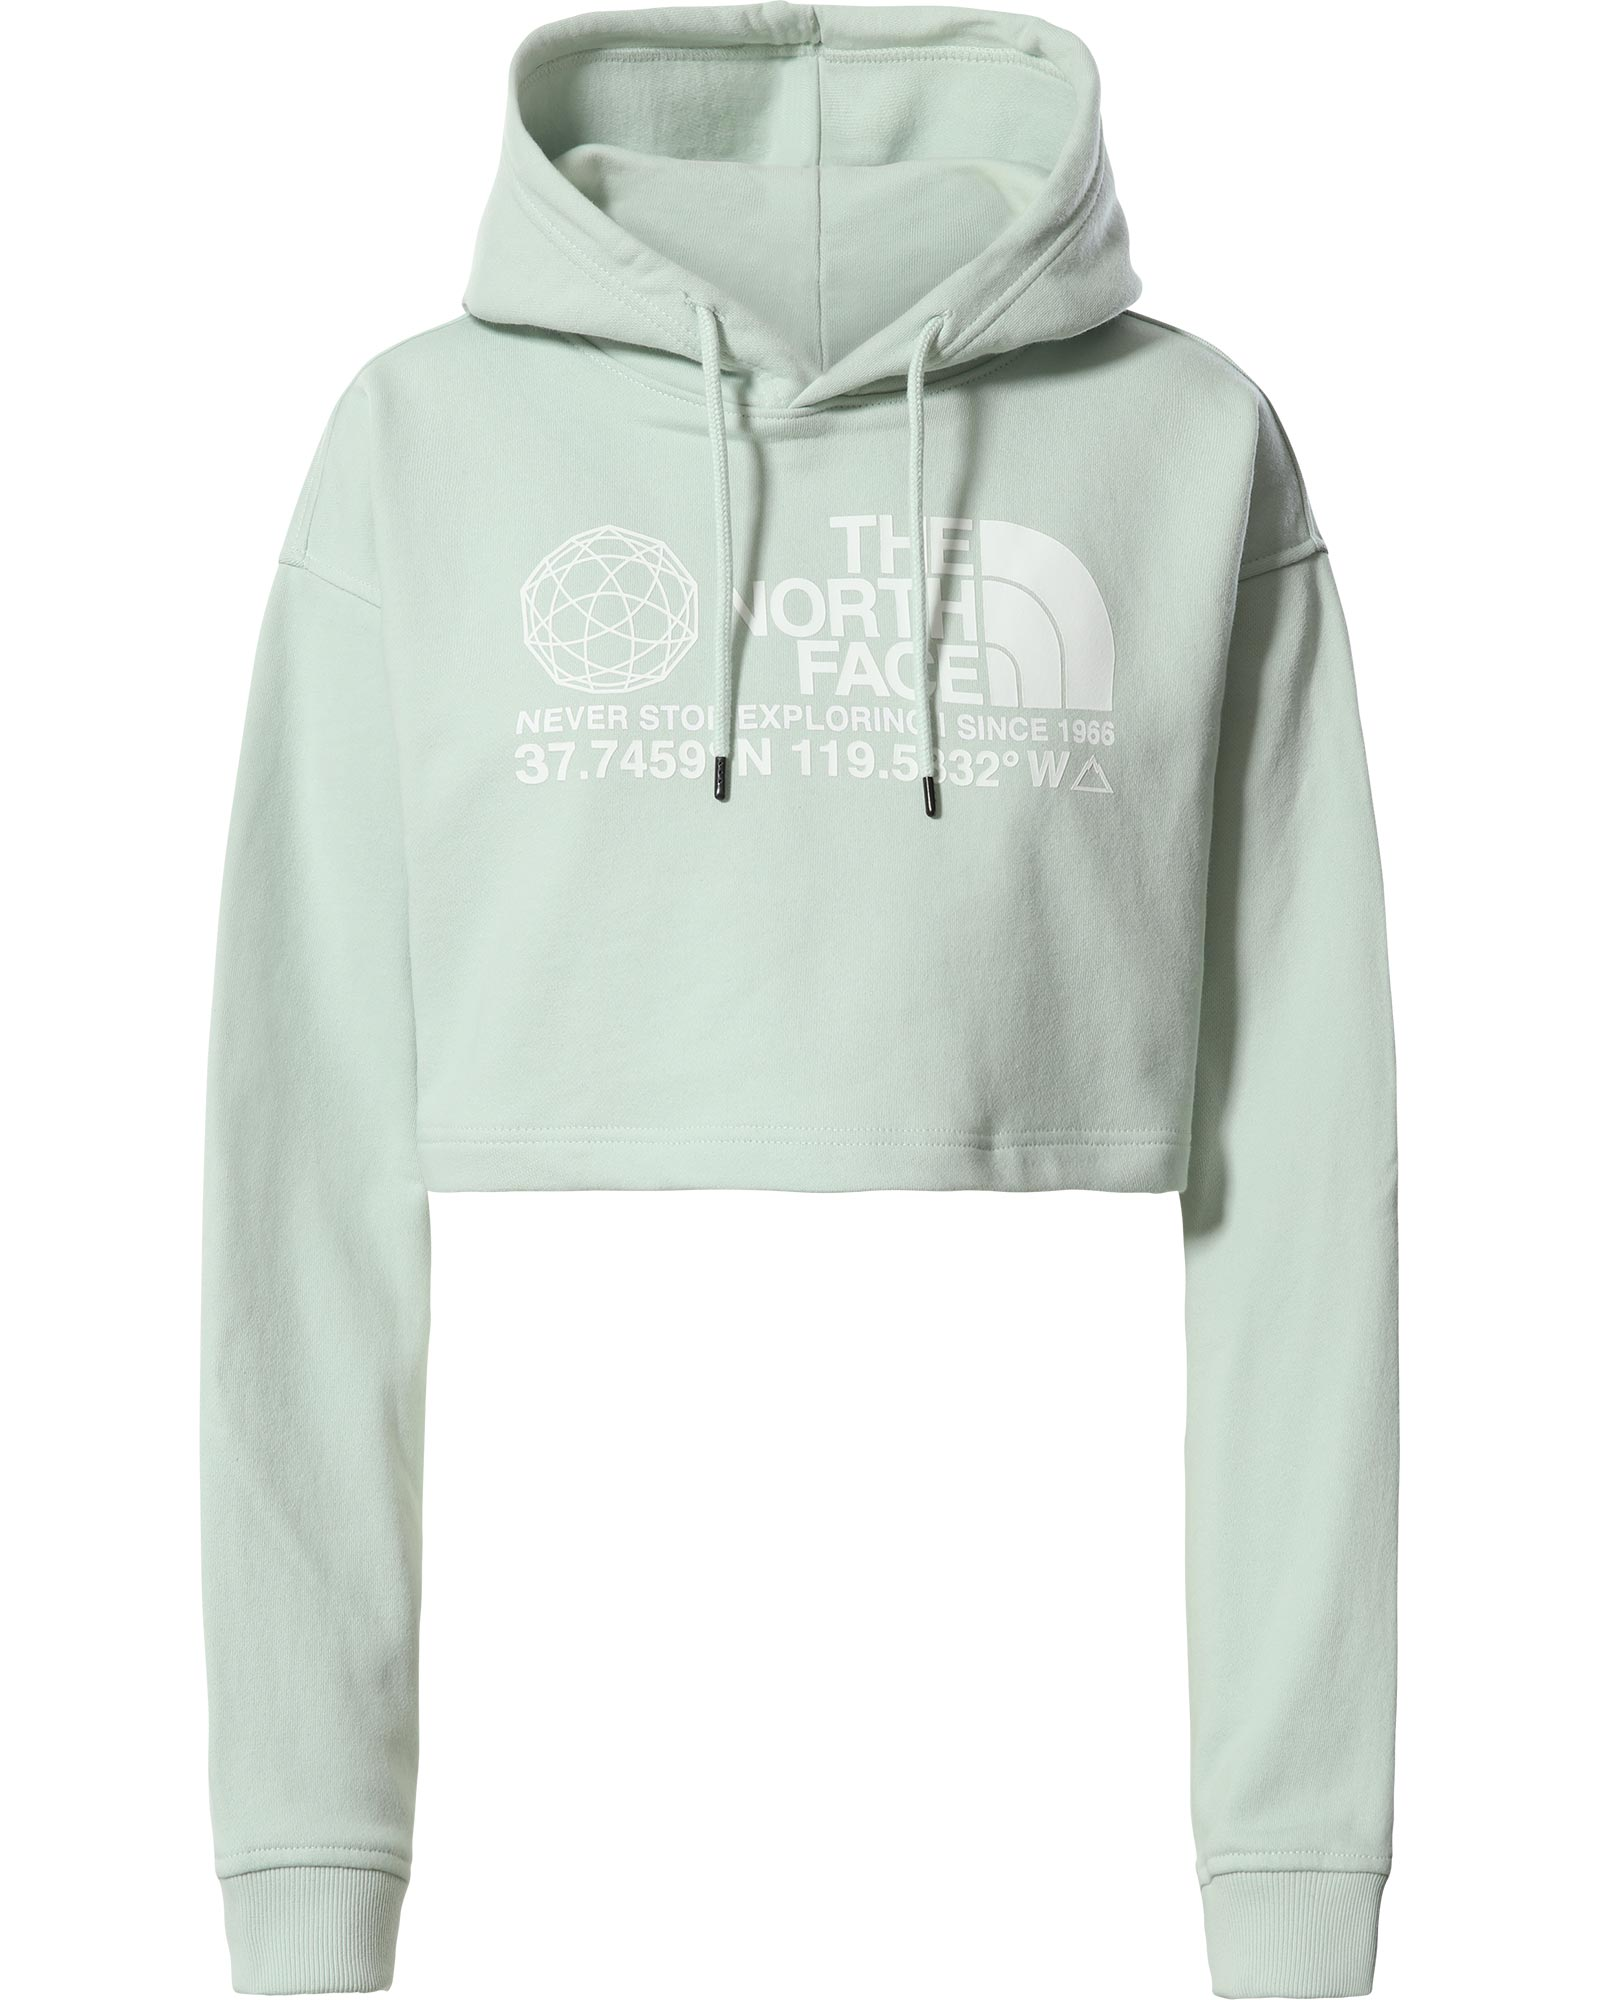 The North Face Coordinates Crop Drop Pullover Women's Hoodie 0